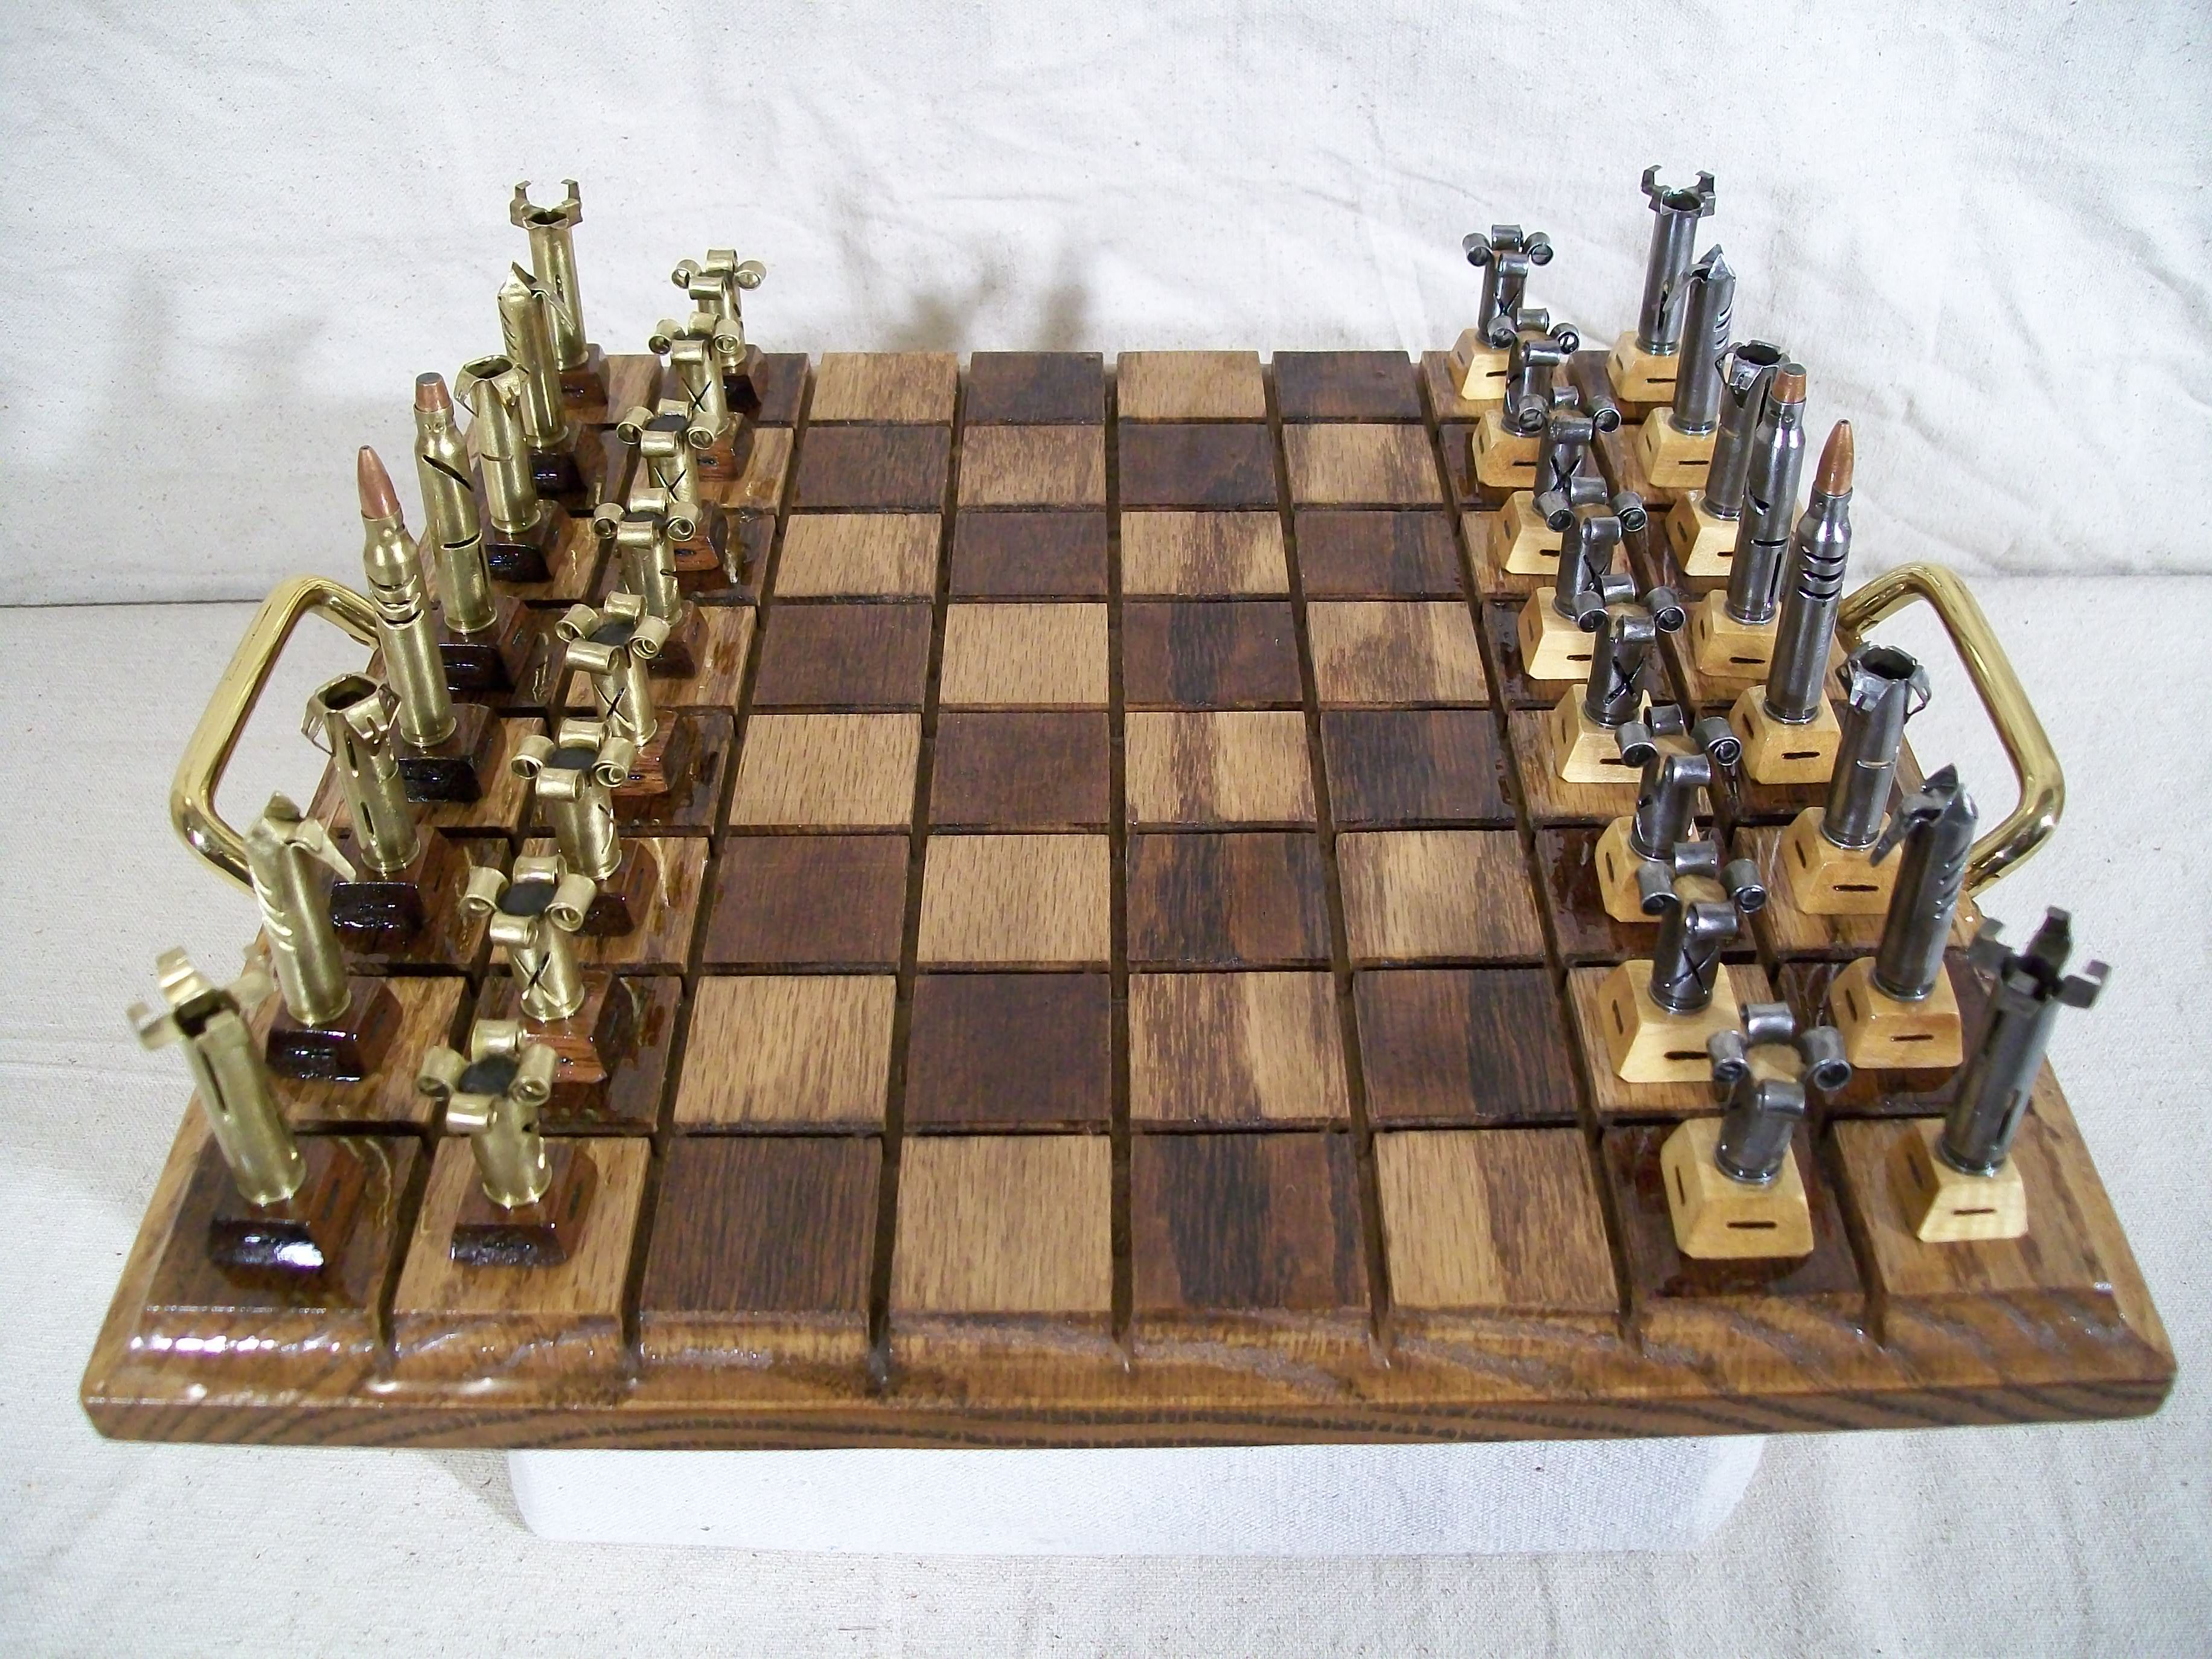 Get An Old Chessboard Or Build One Into A Table That Can